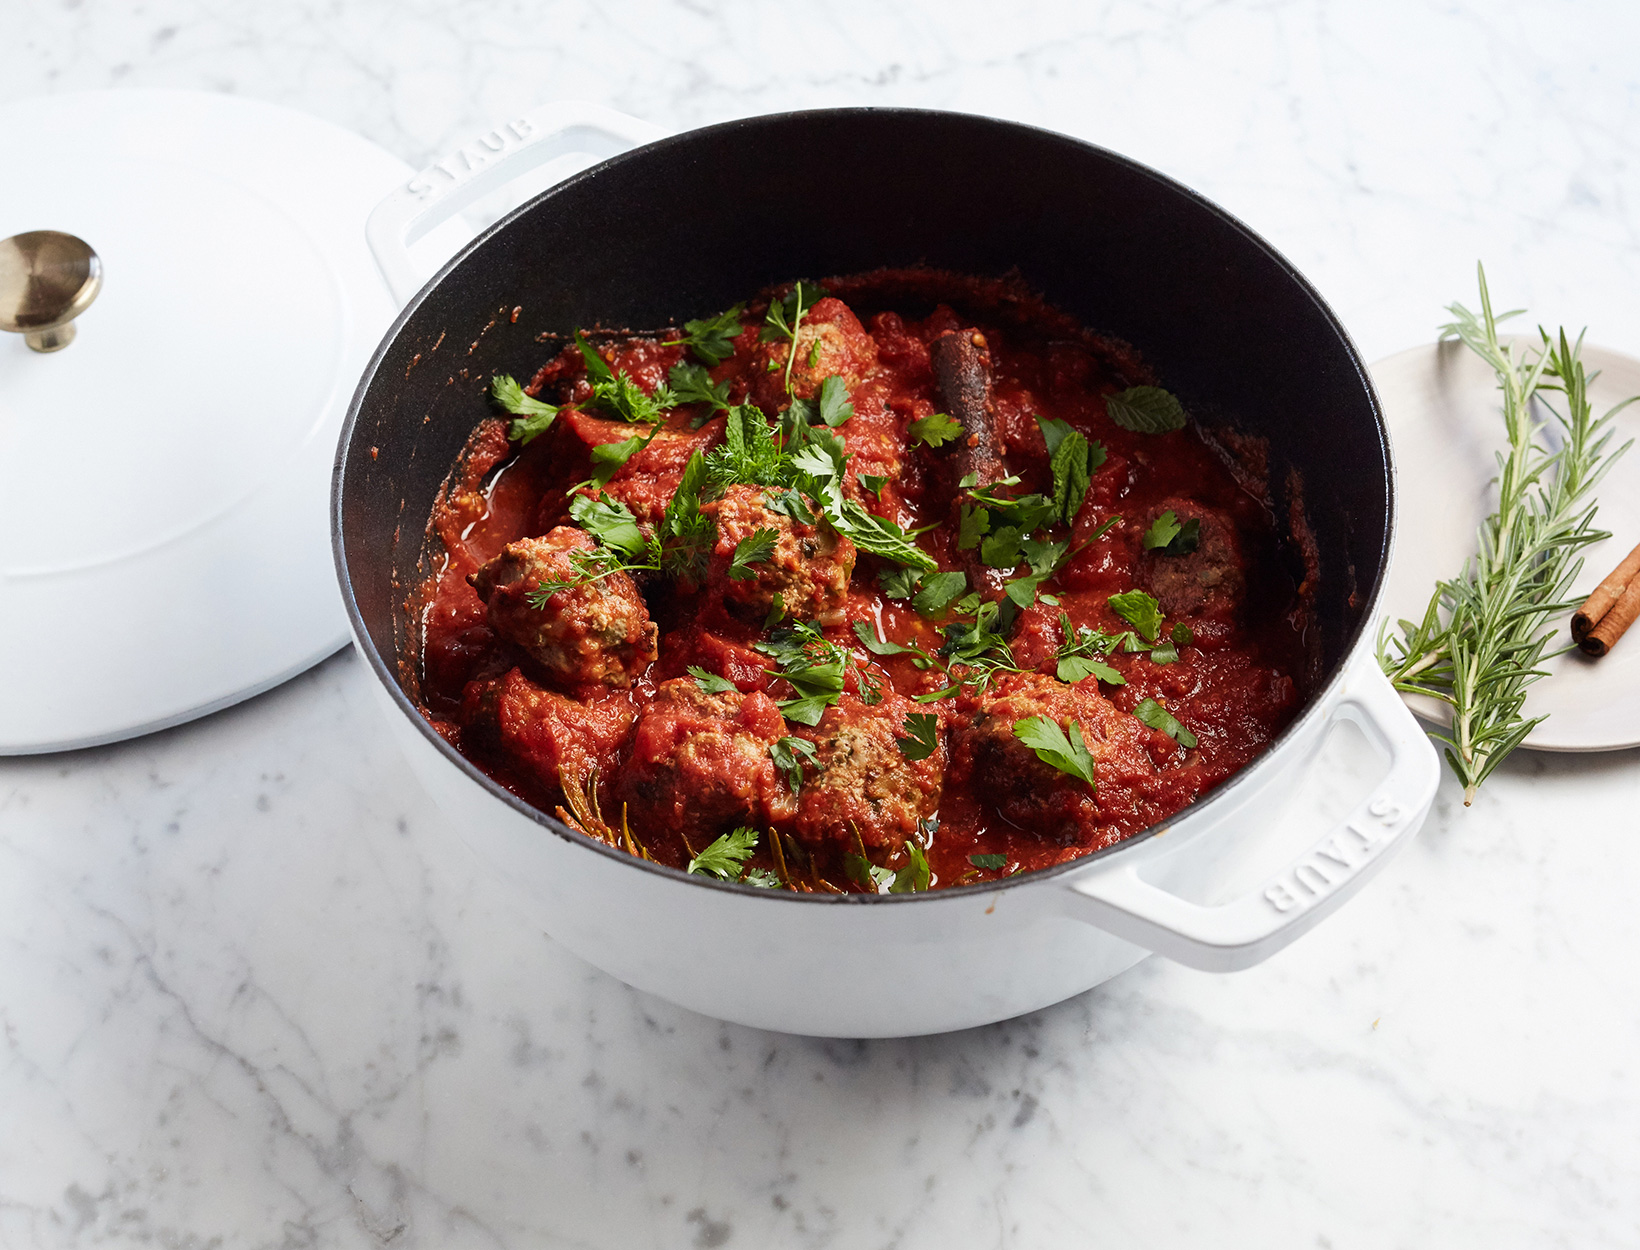 GP's Moroccan Turkey Meatballs